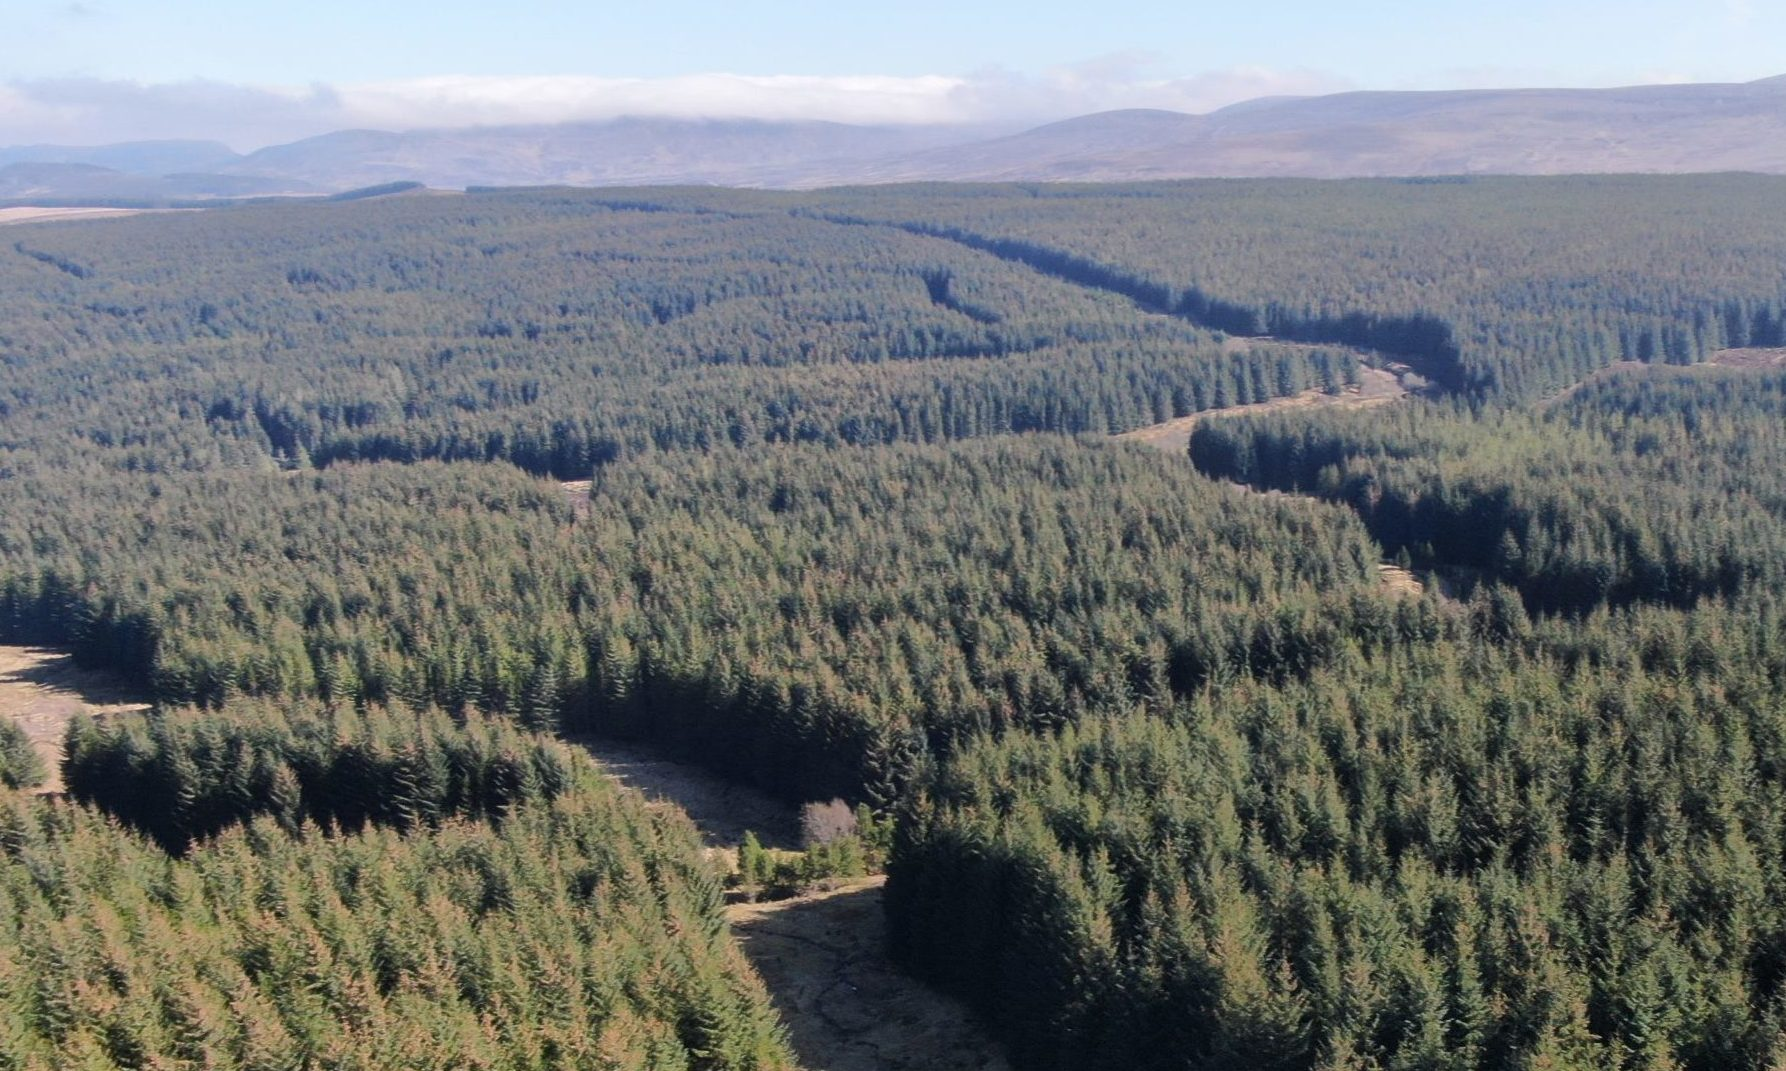 Badvoon Forest, a 728-hectare commercial conifer forest, which is on the market for offers over £5,750,000.